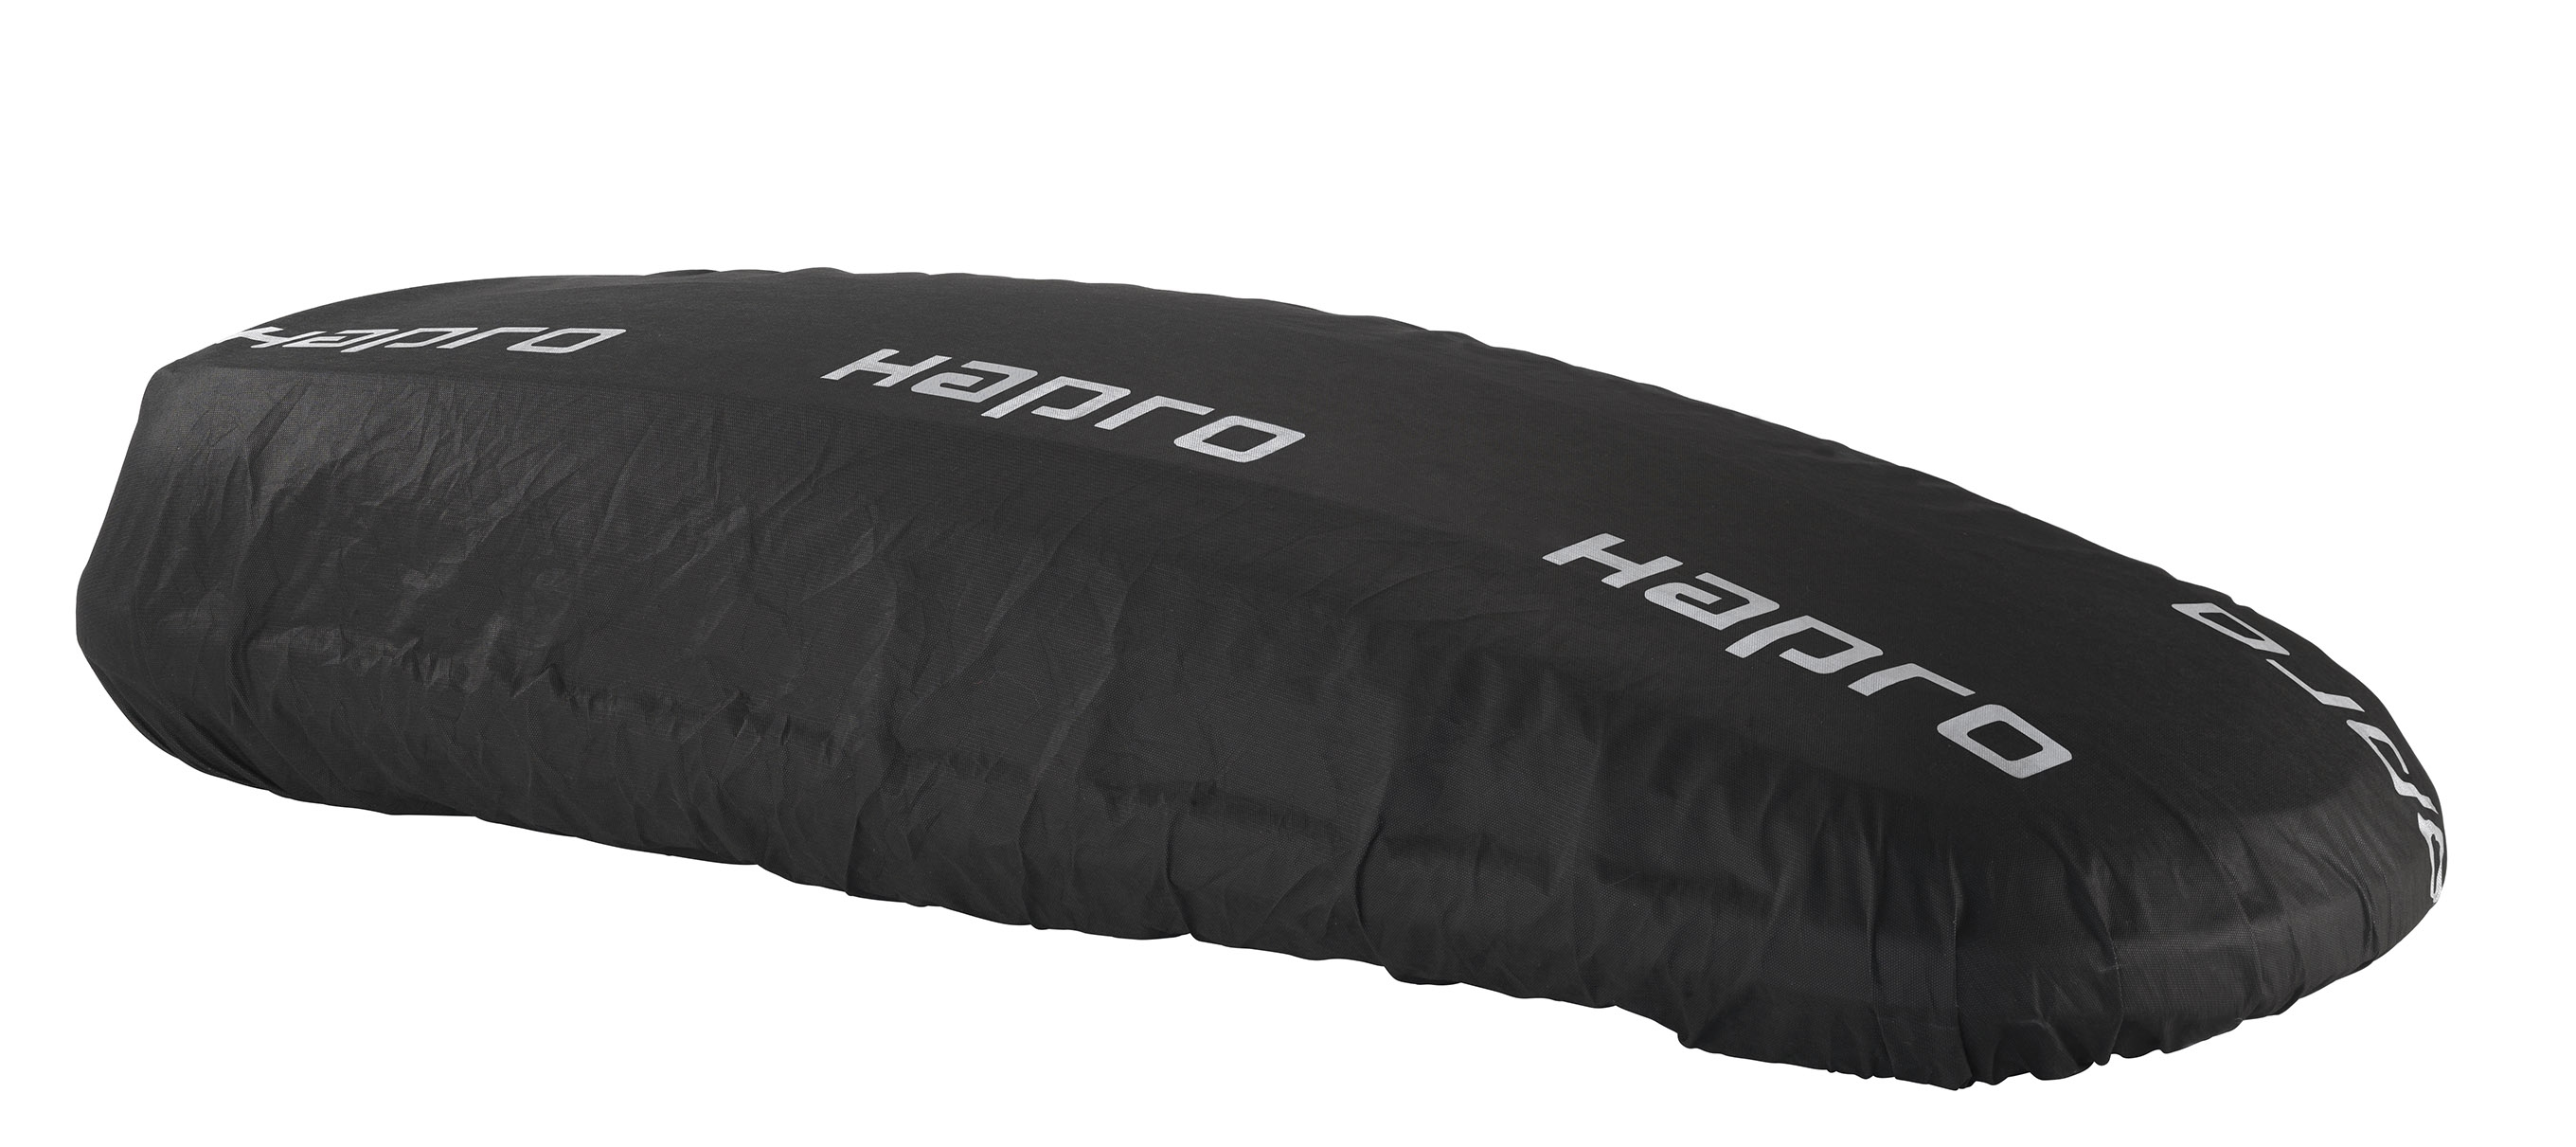 Hapro roof box cover L